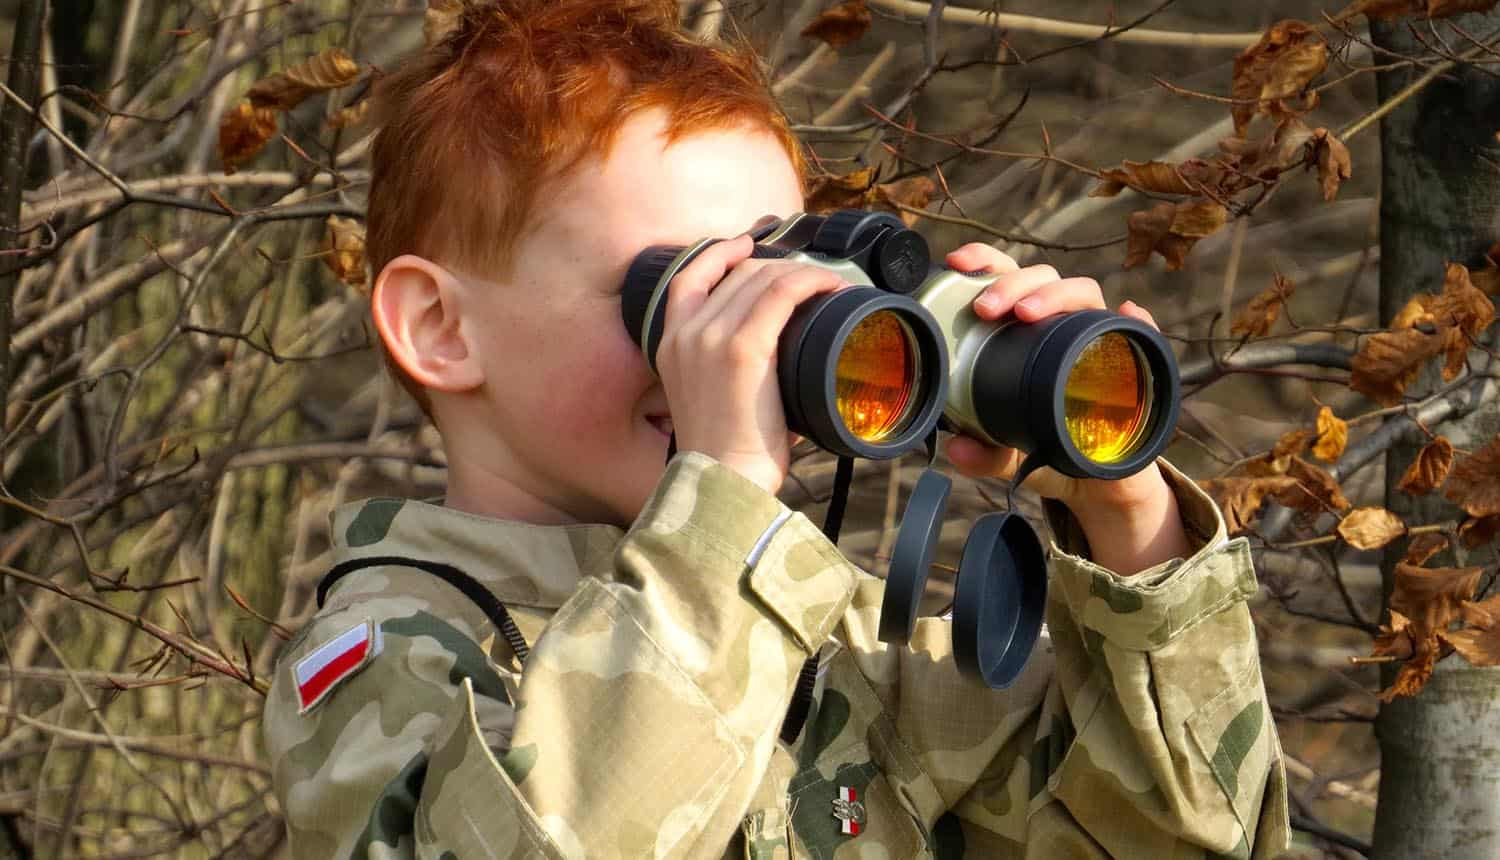 Image of boy using binoculars representing companies watching their data